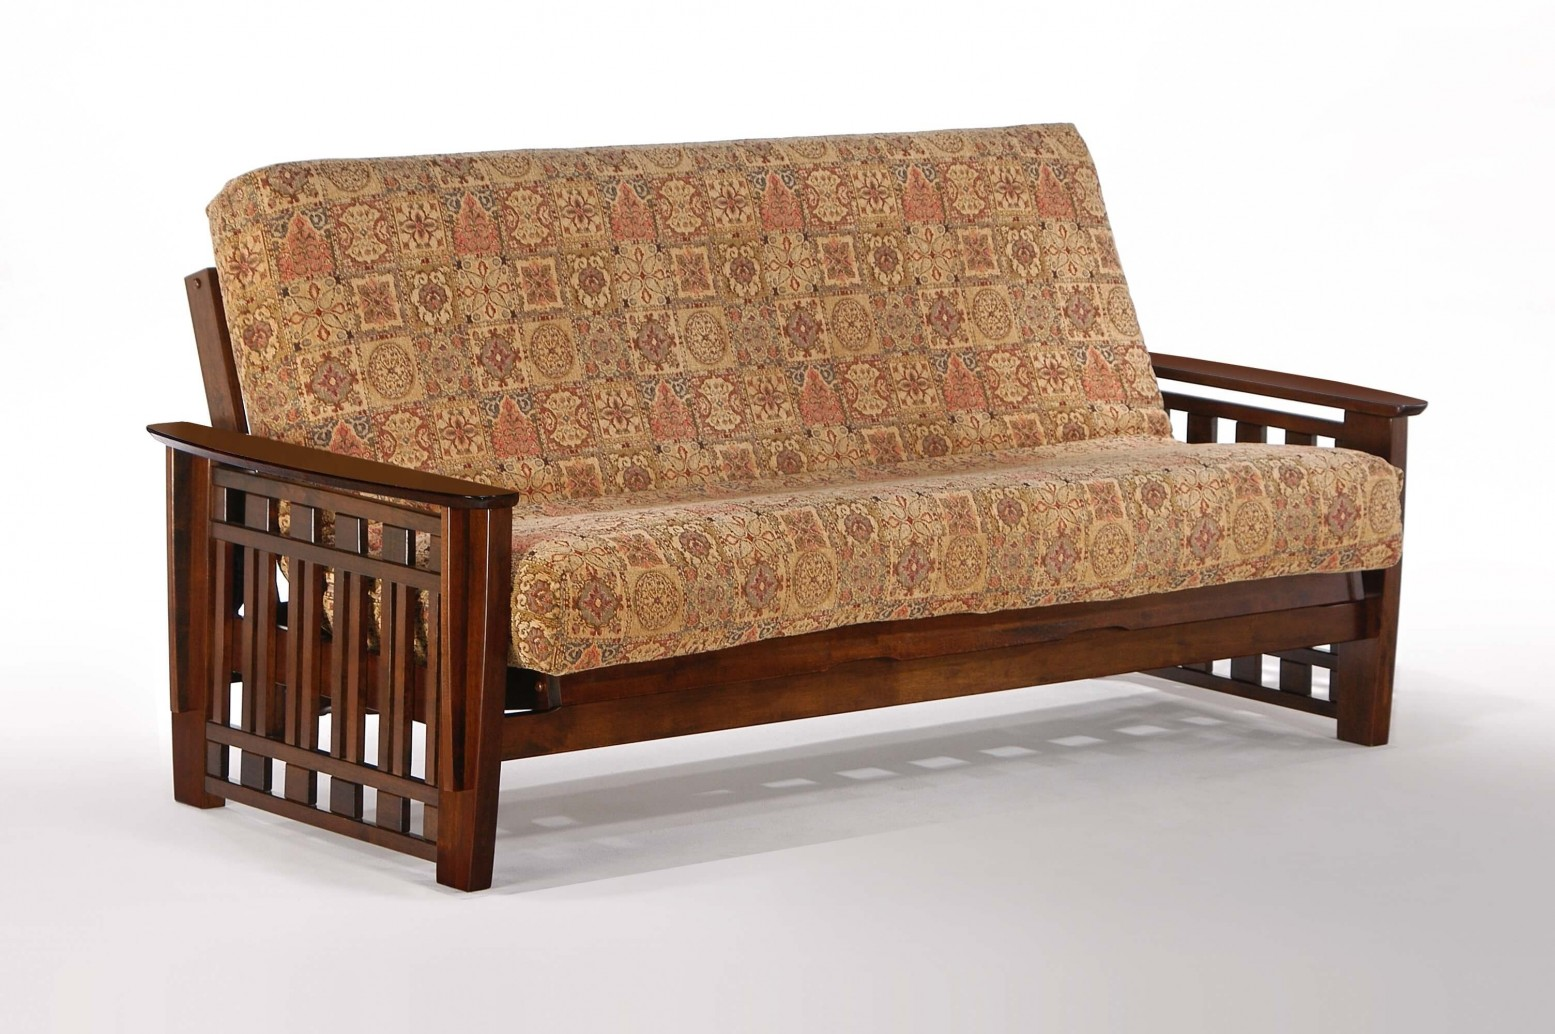 Wood Futon Bed Queen Size